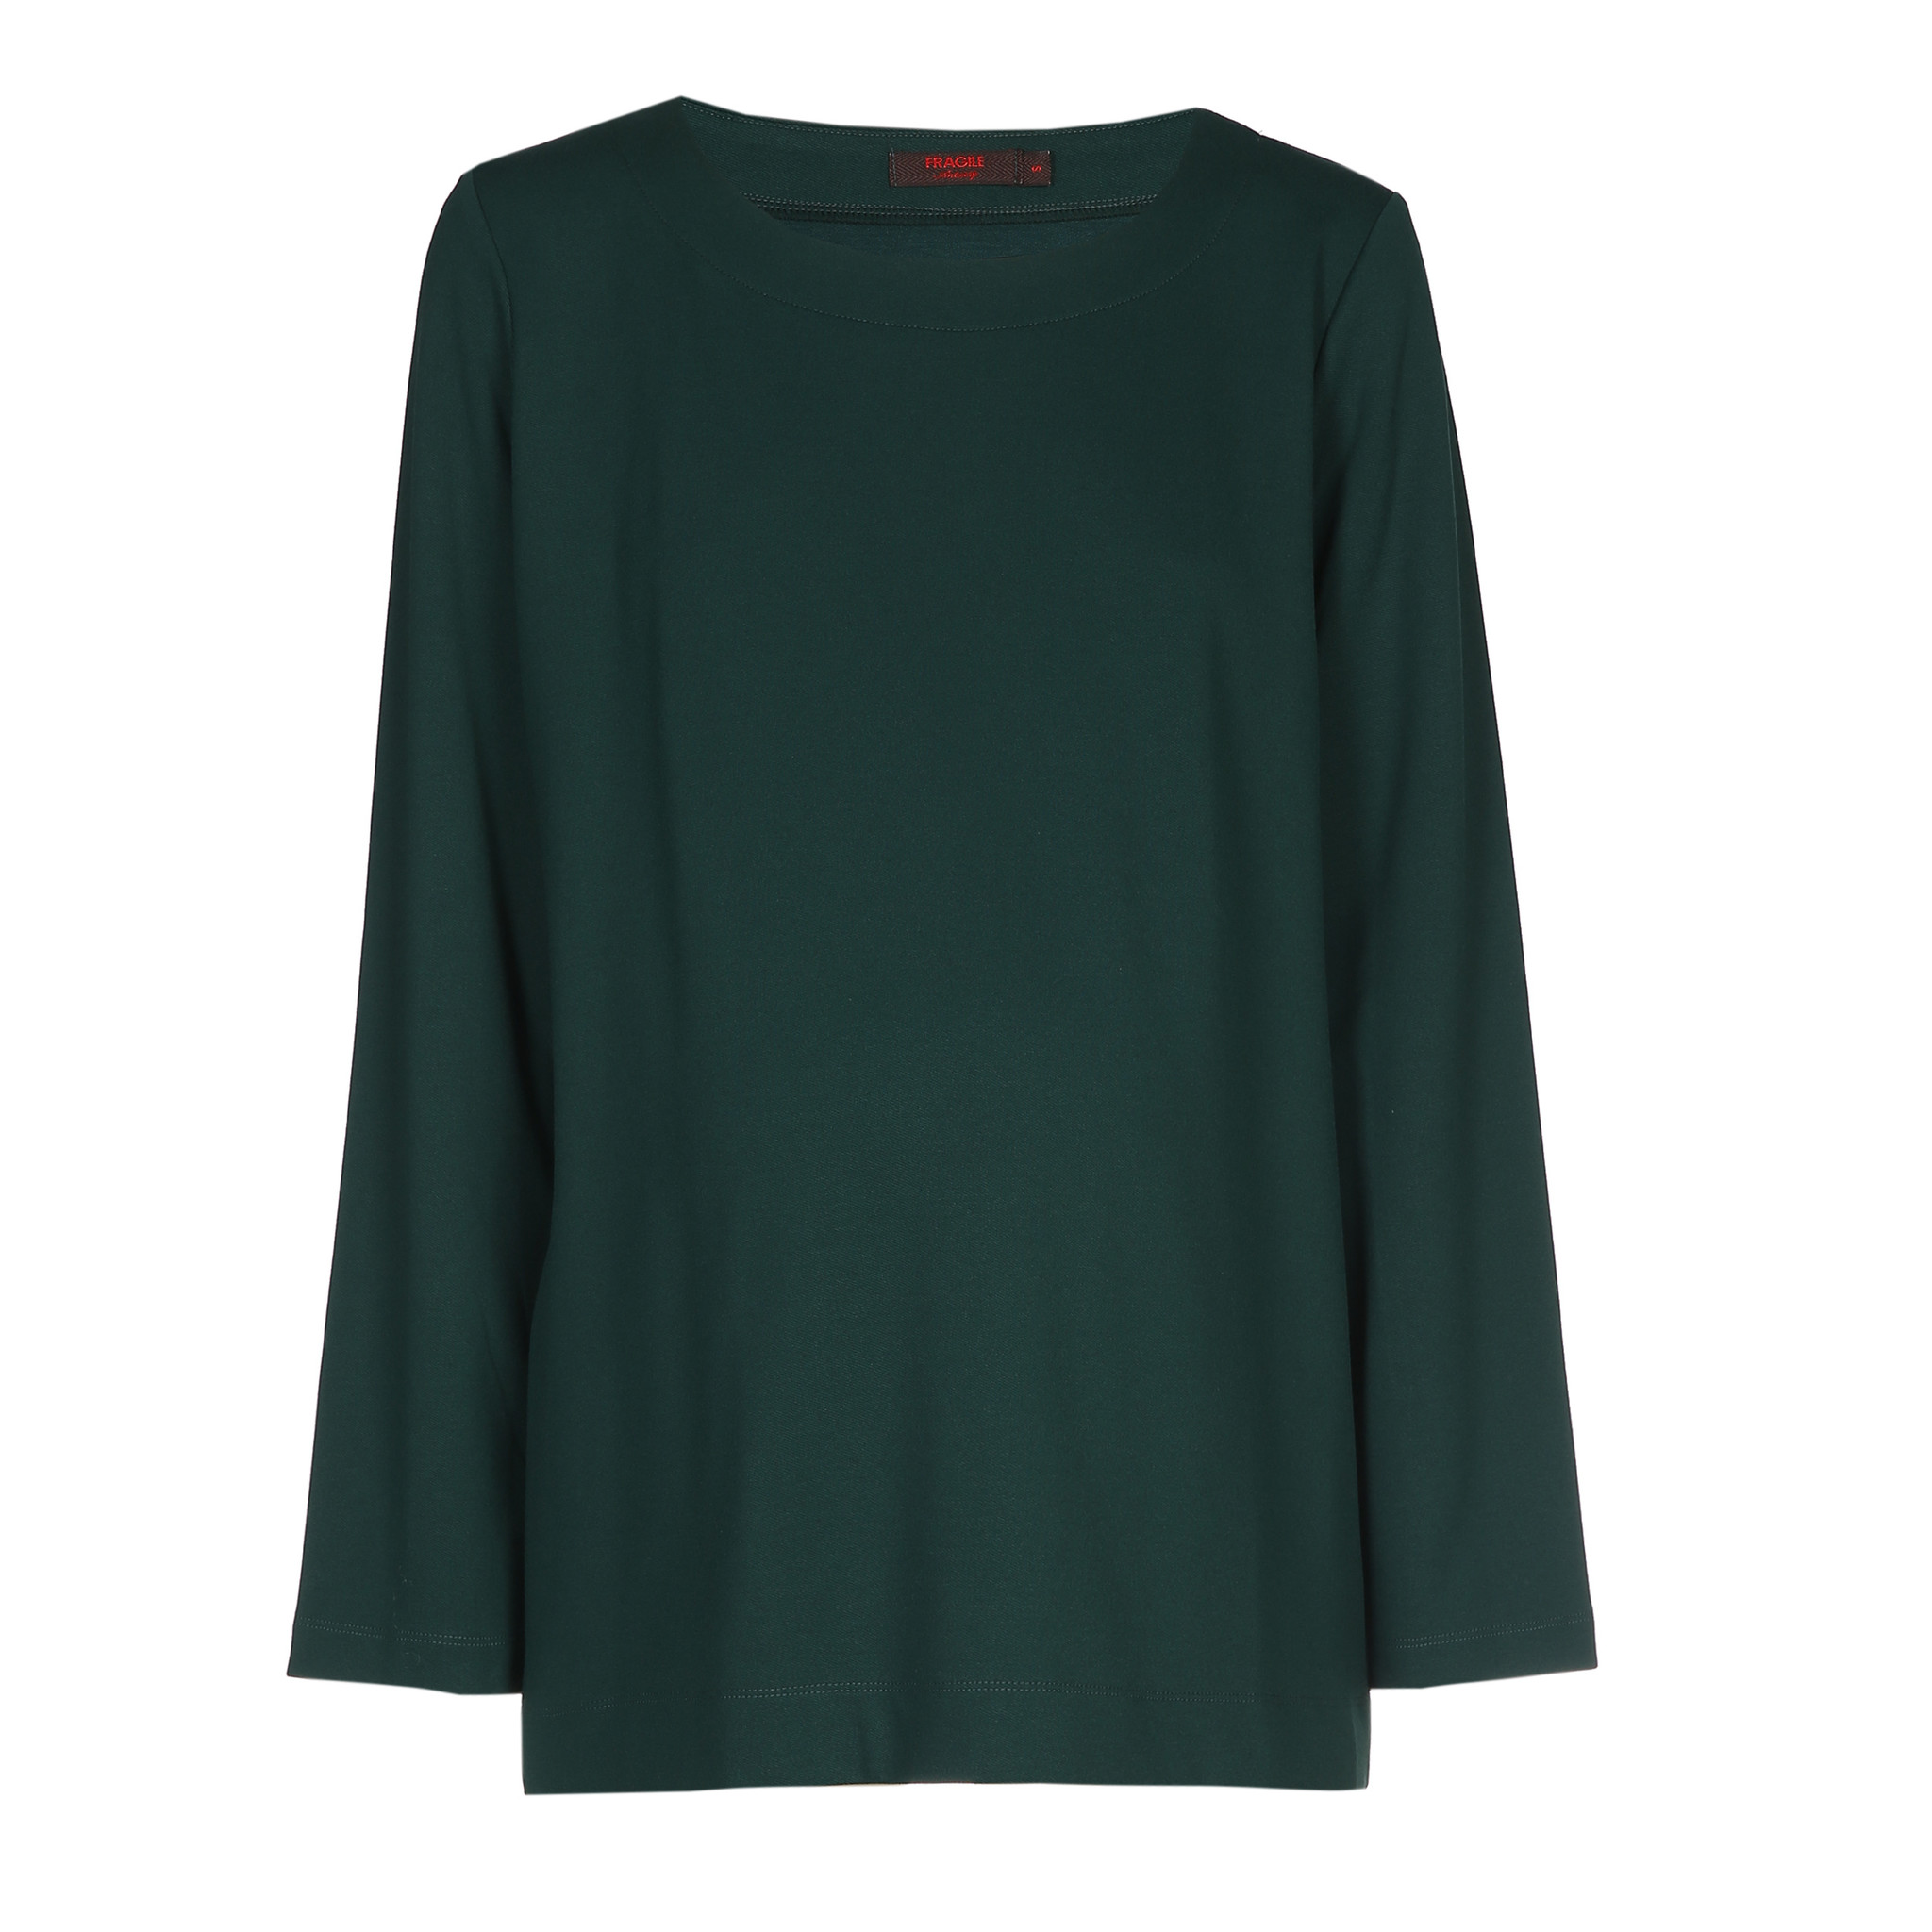 T-shirt long sleeves - dark green-1